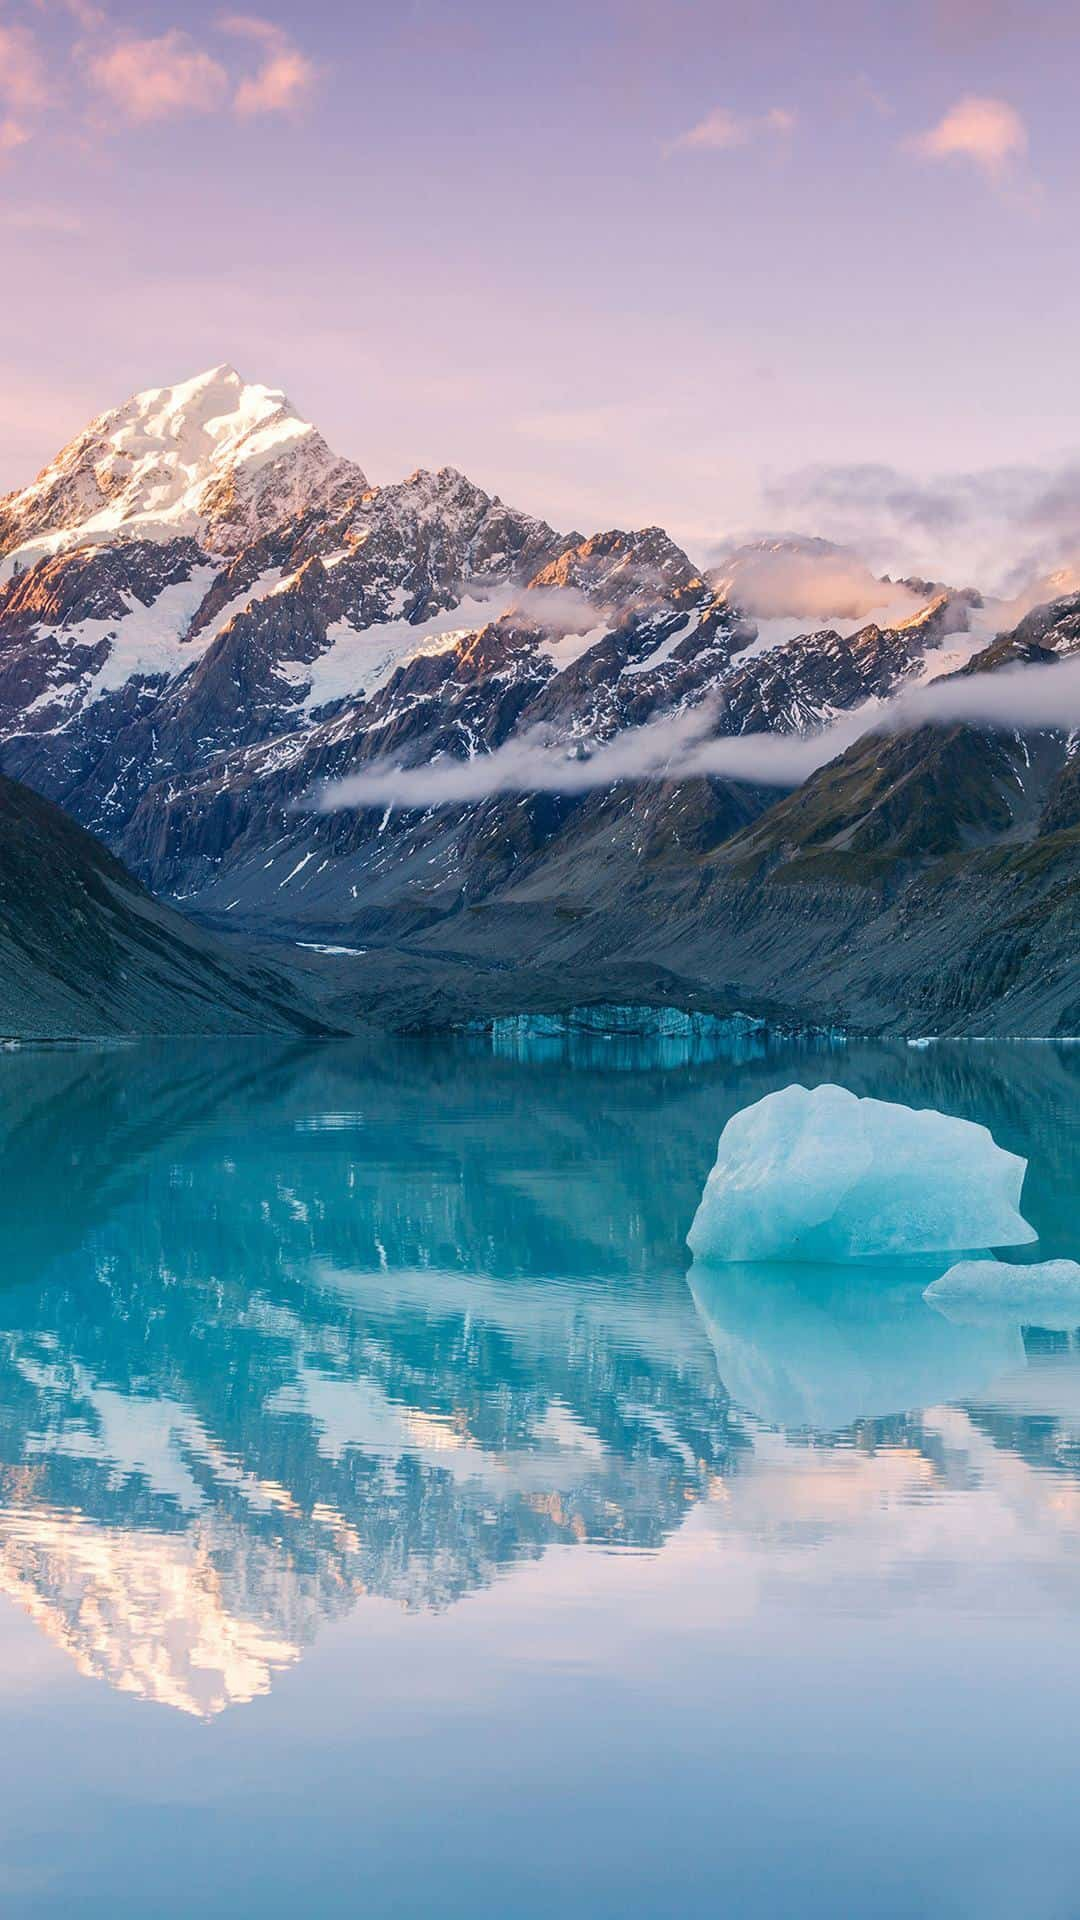 Snow Mountains Glaciers Nature iPhone Wallpaper iphoneswallpapers com